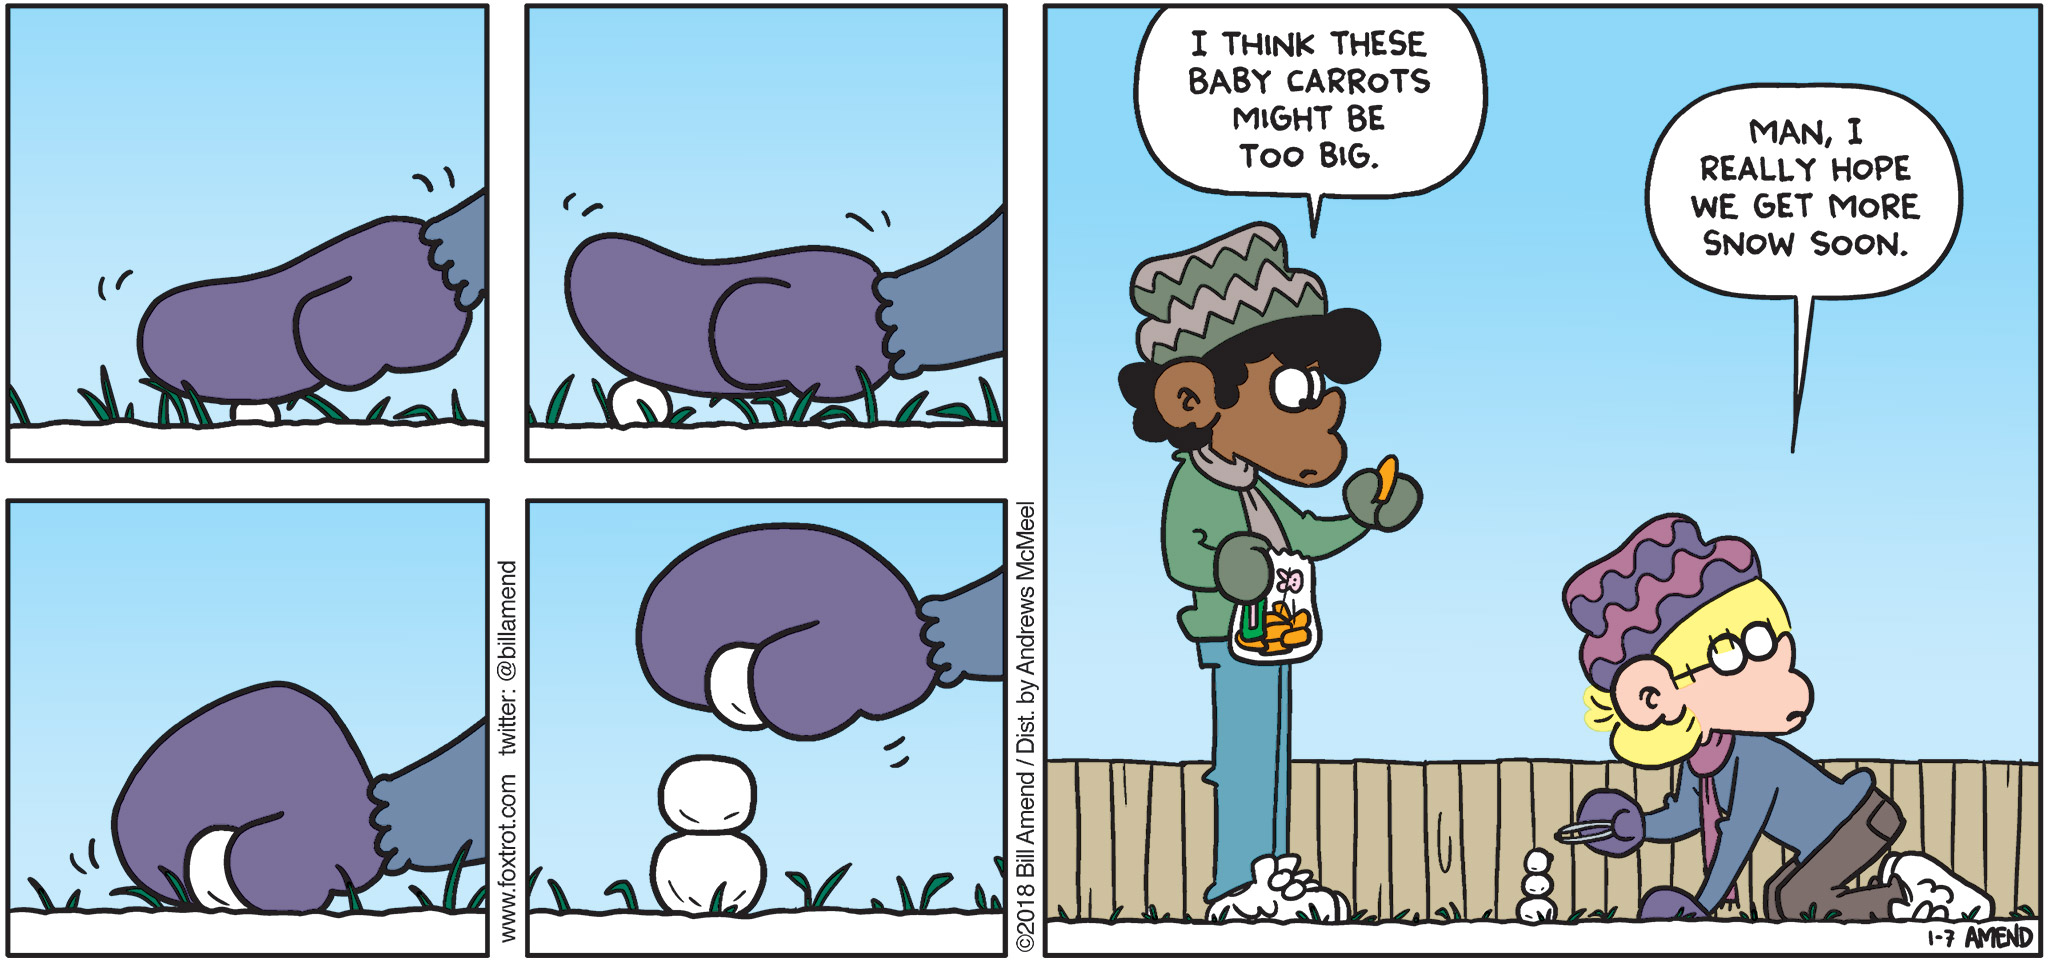 """FoxTrot by Bill Amend - """"Snowmin"""" published January 7, 2018 - Marcus says: I think these baby carrots might be too big. Jason says: Man, I really hope we get more snow soon."""